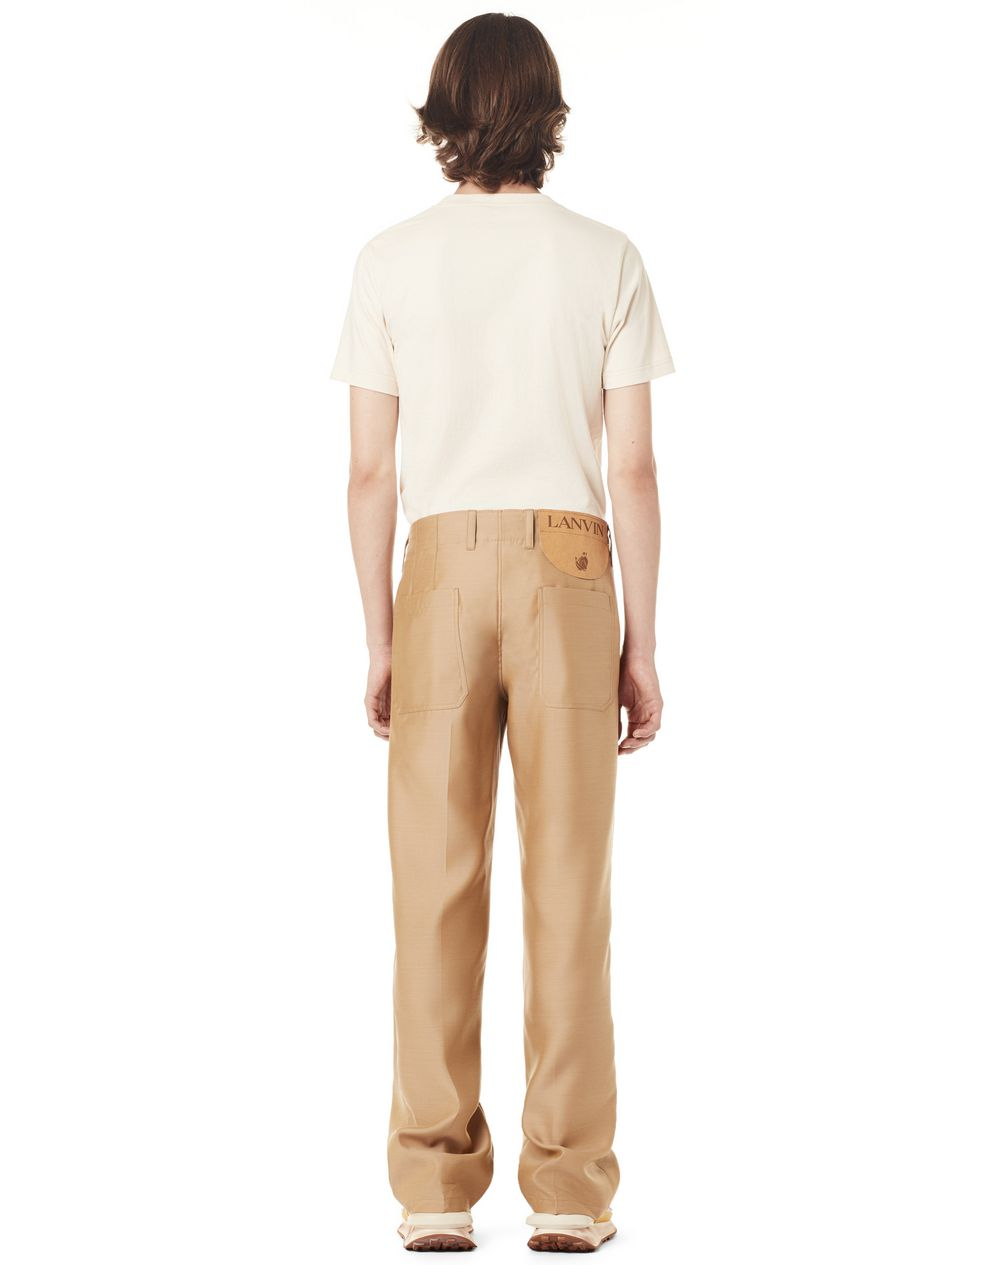 STRAIGHT WOOL TROUSERS - Lanvin